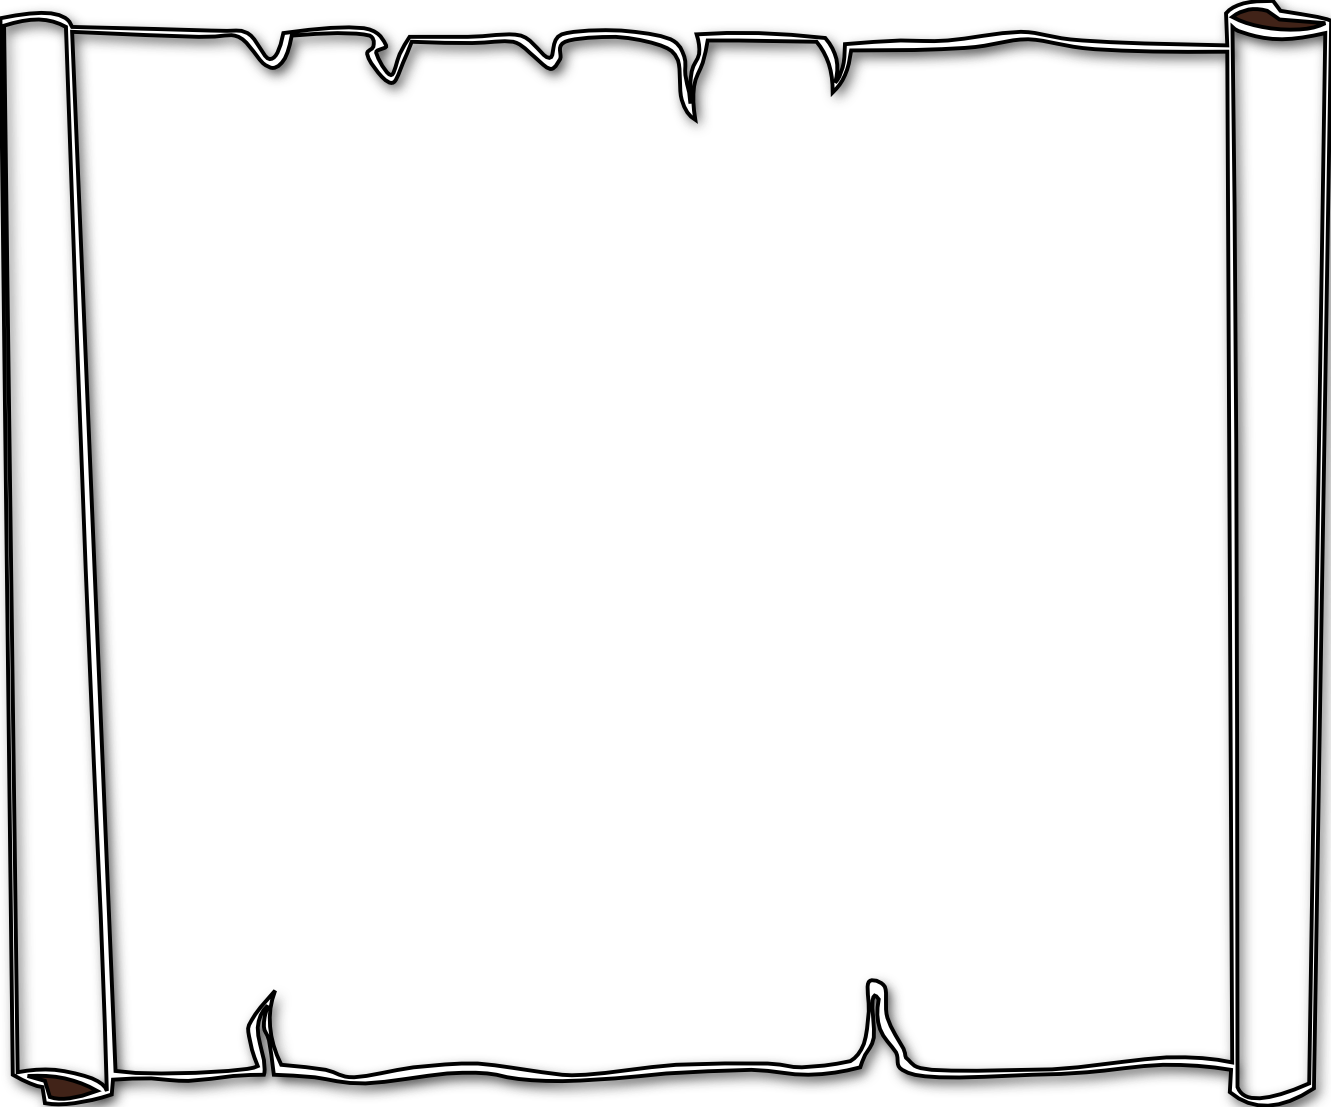 Parchment Background or Border 1 Black White Line Art Coloring ...